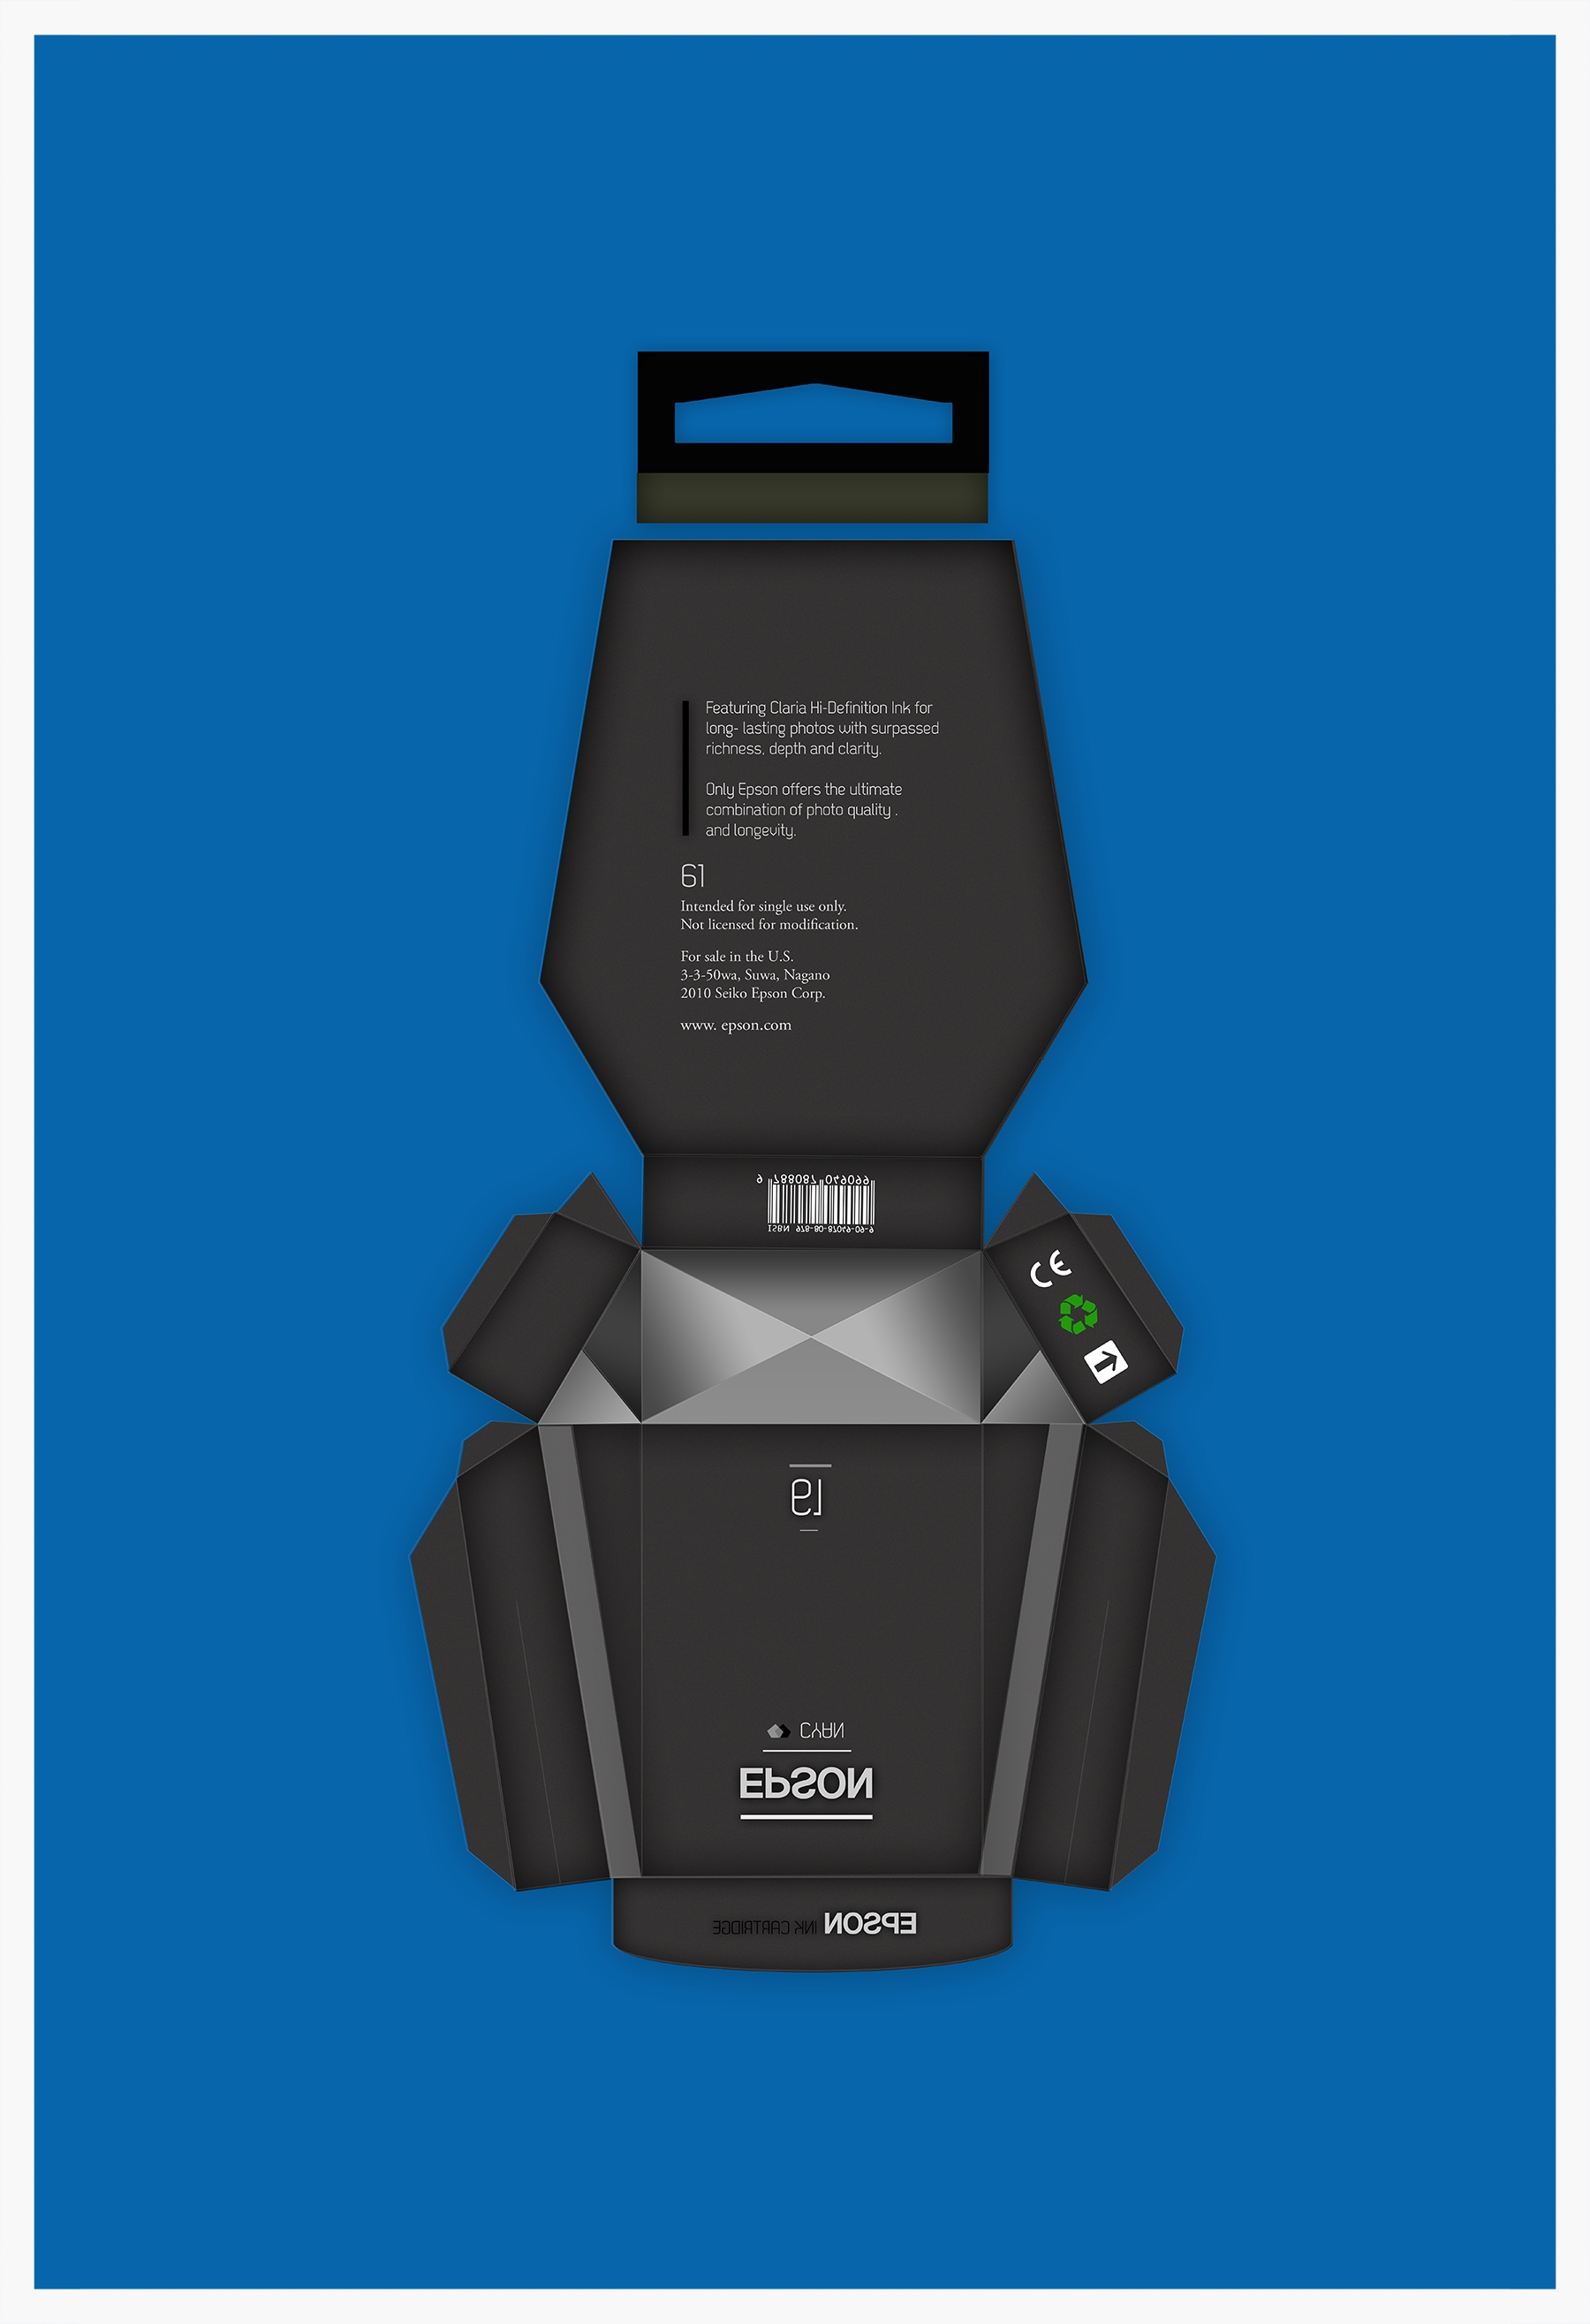 Final epson packaging.jpg